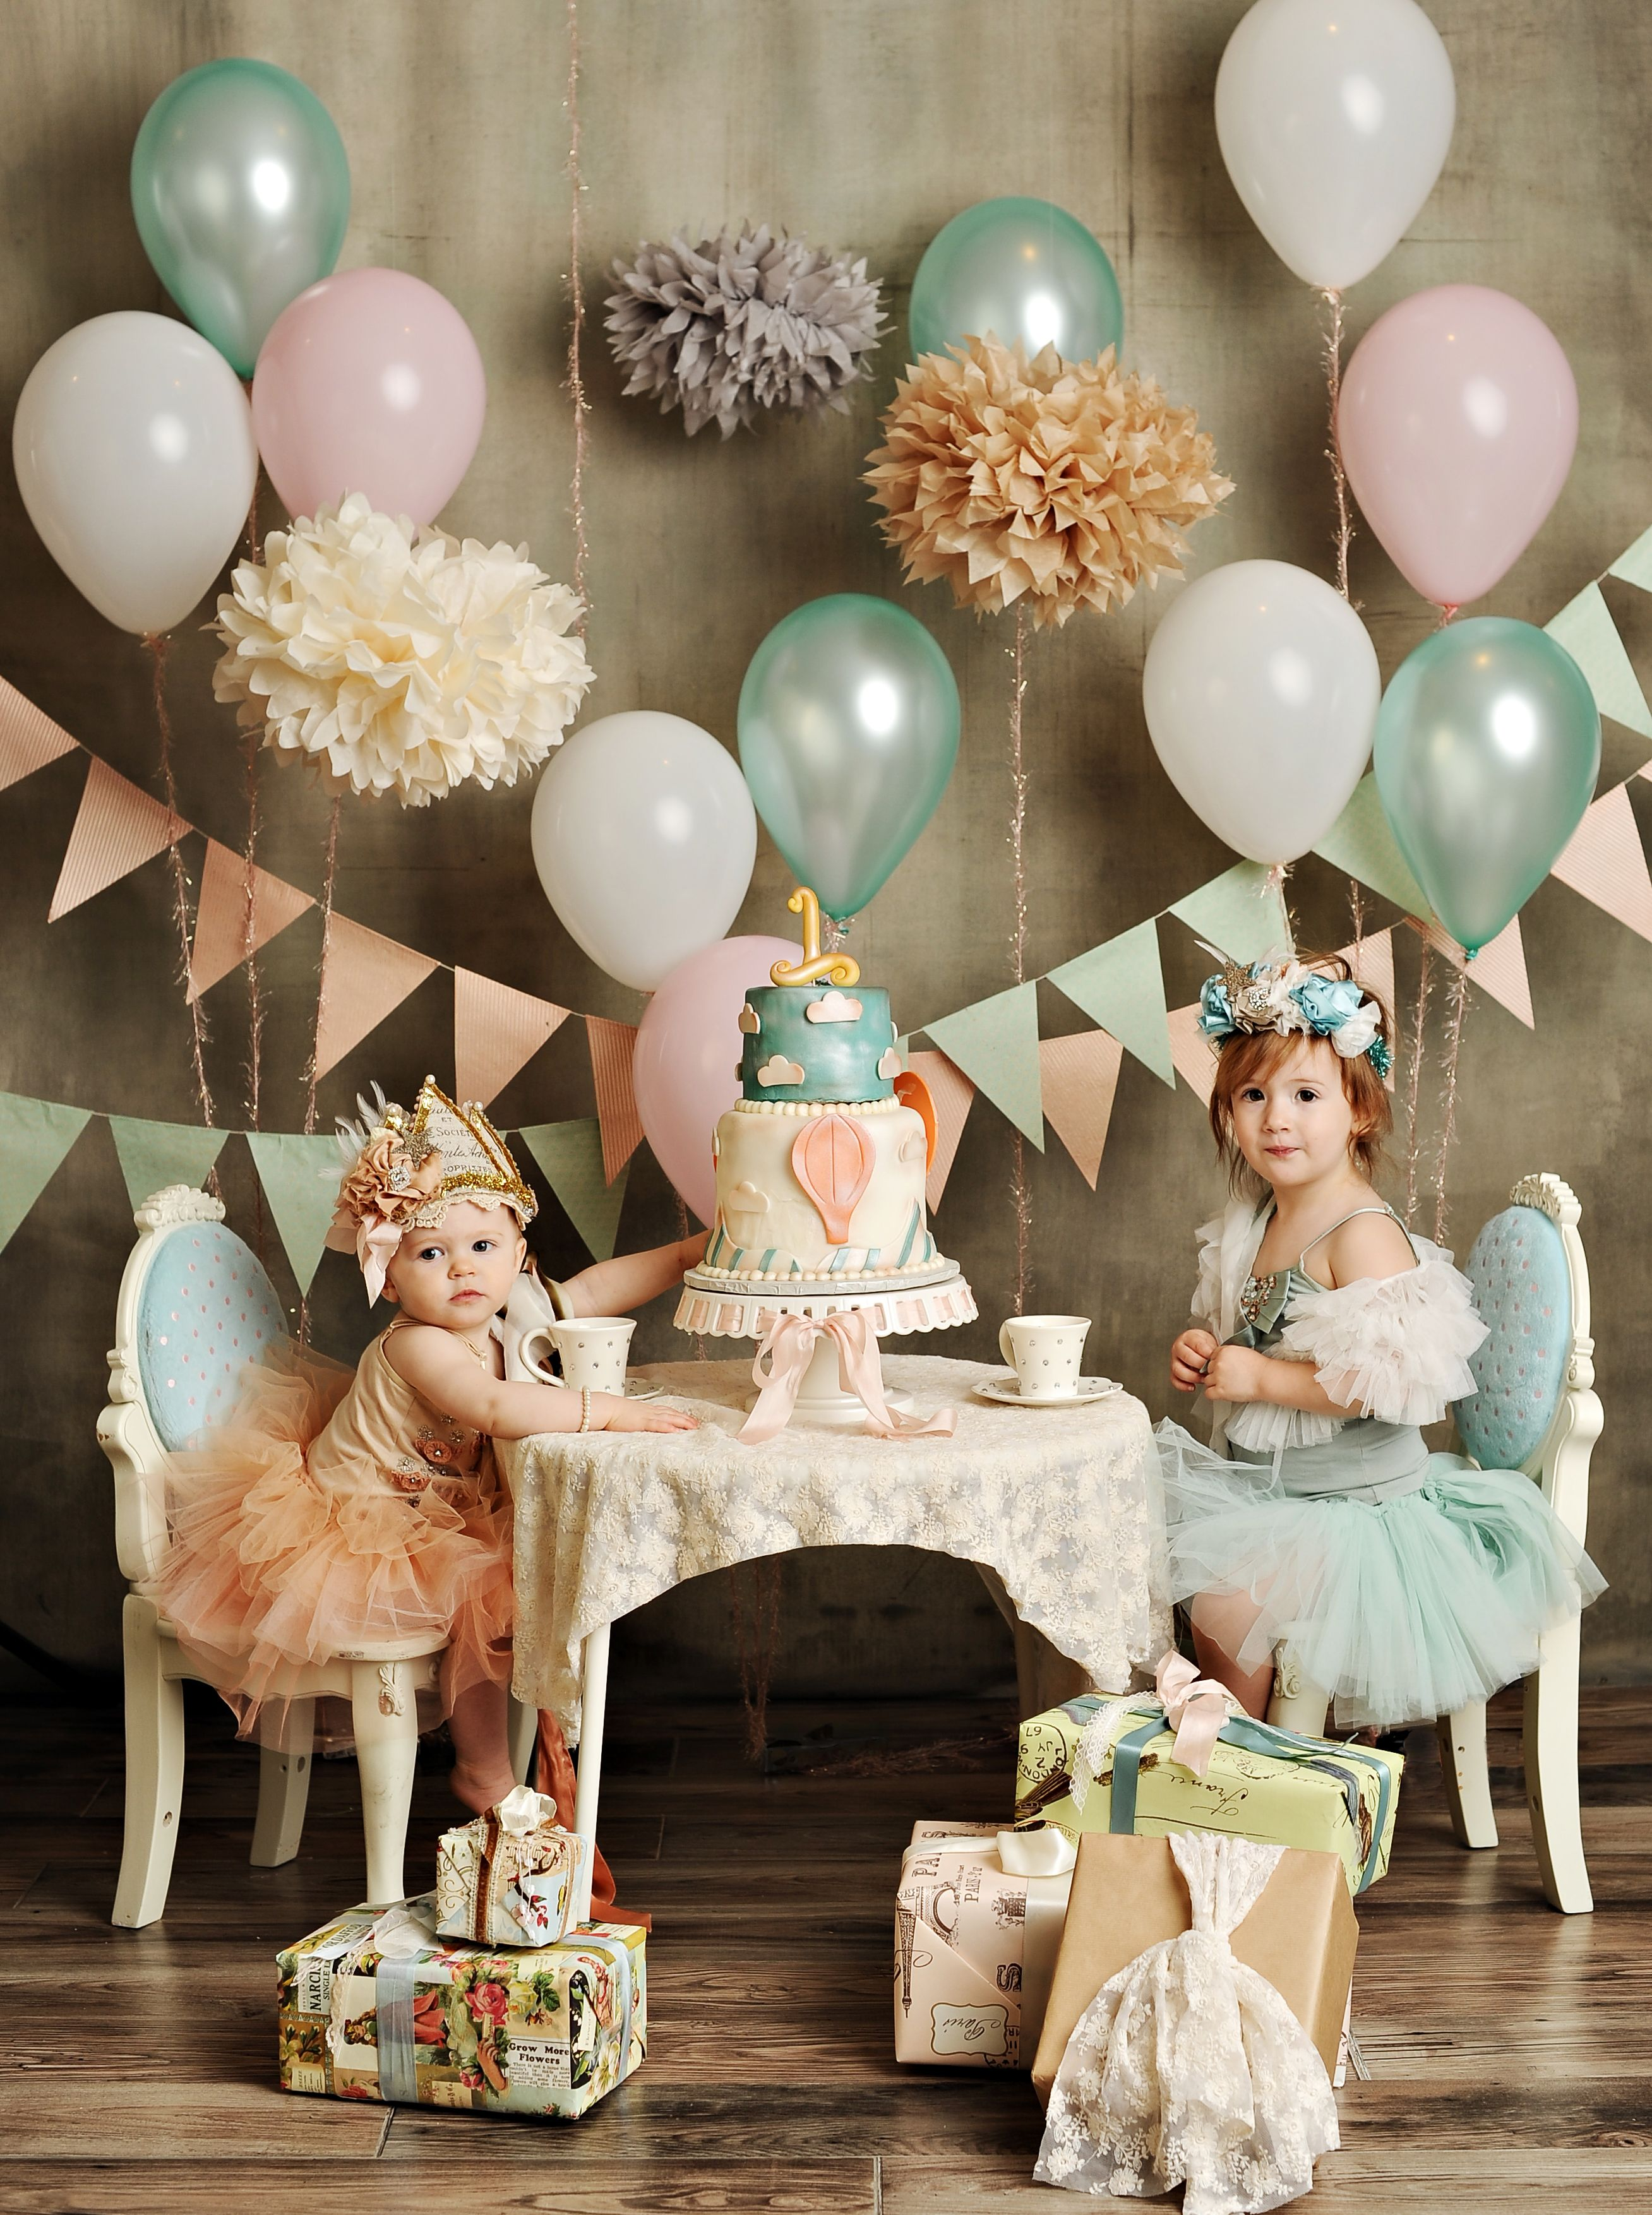 This Is Such A Perfect Birthday Photoshoot There Is So Much Birthday Party Decoration Inspiration He Girls Party Themes Birthday Parties Birthday Party Themes